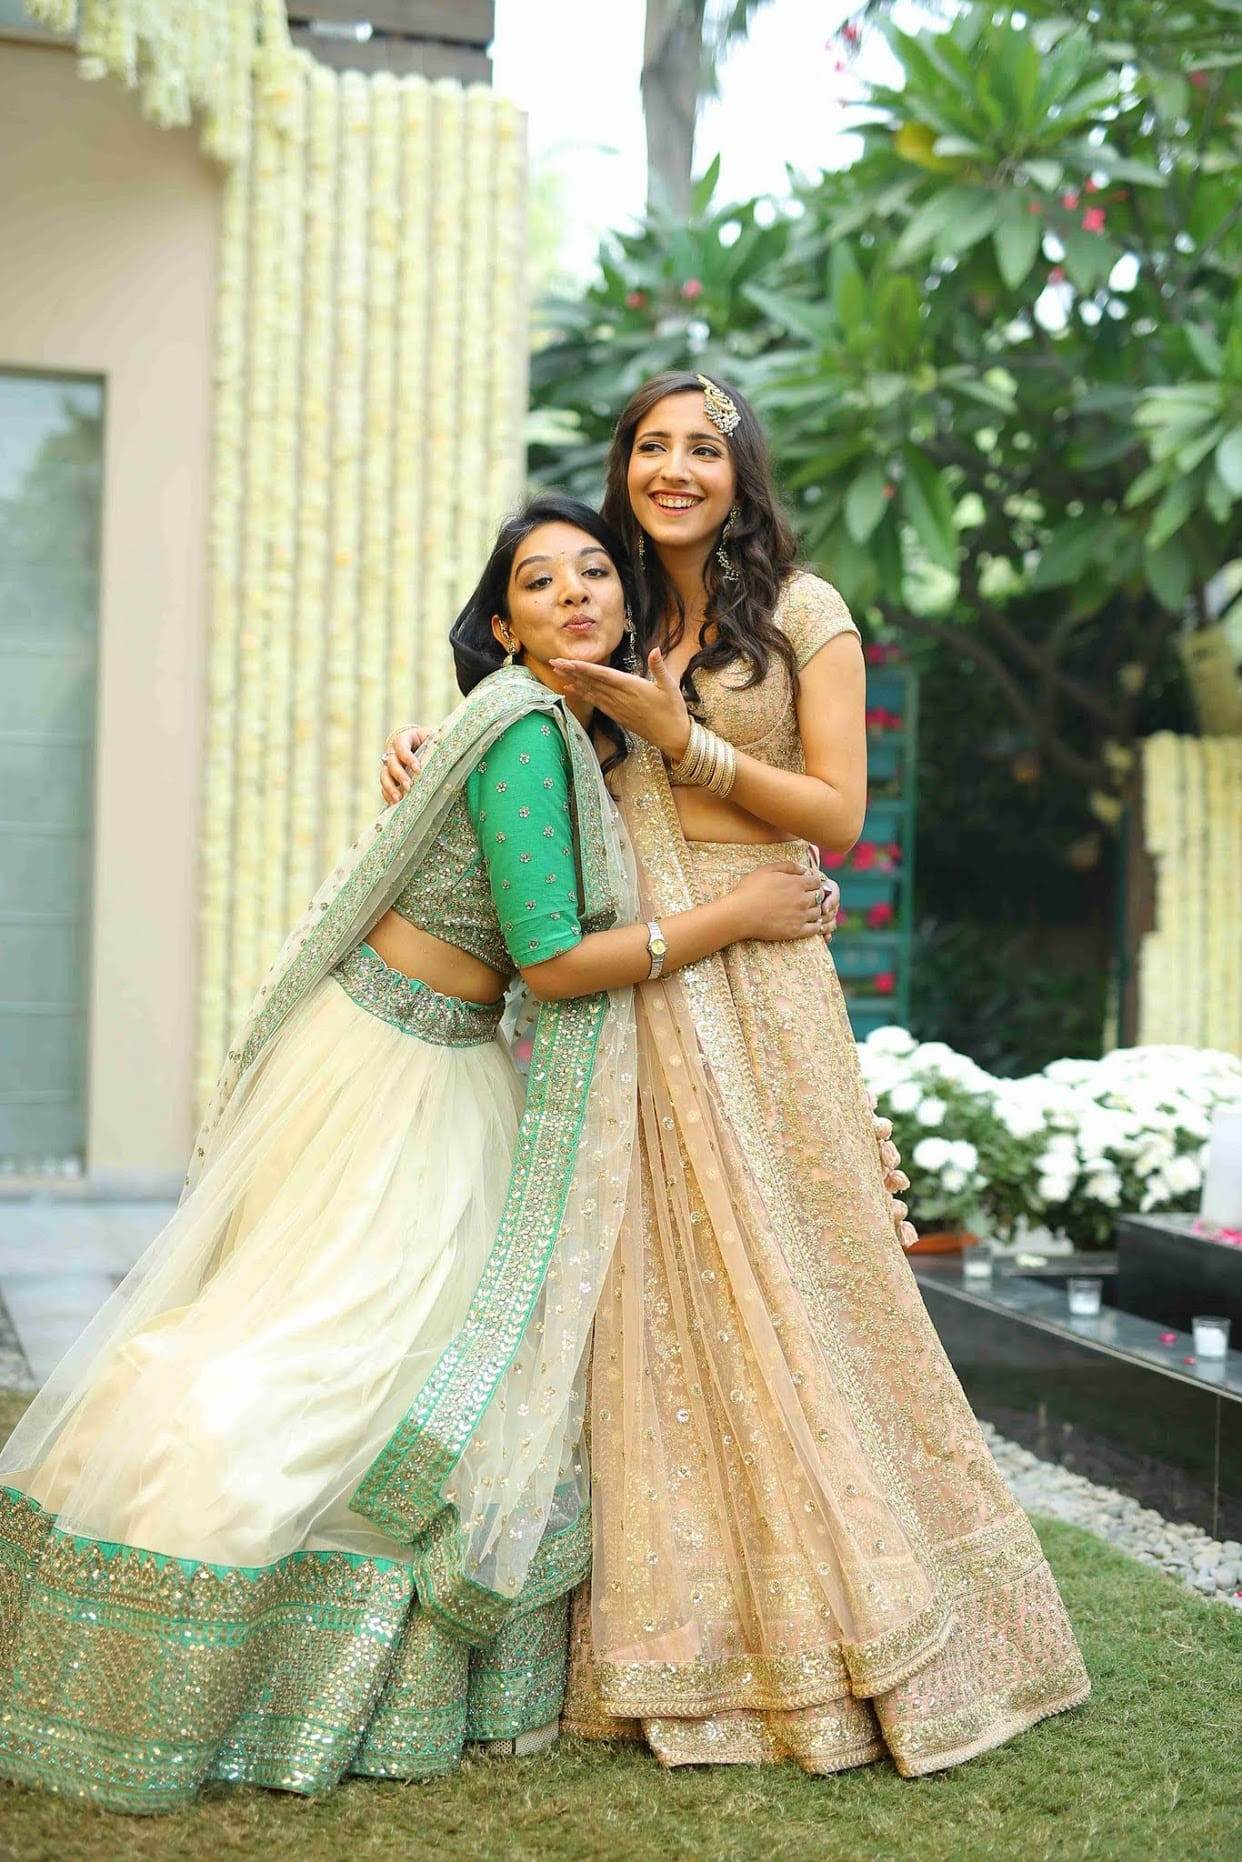 the stunning bride!:tarun tahiliani, rajkamal studio, jasmeet kapany hair and makeup